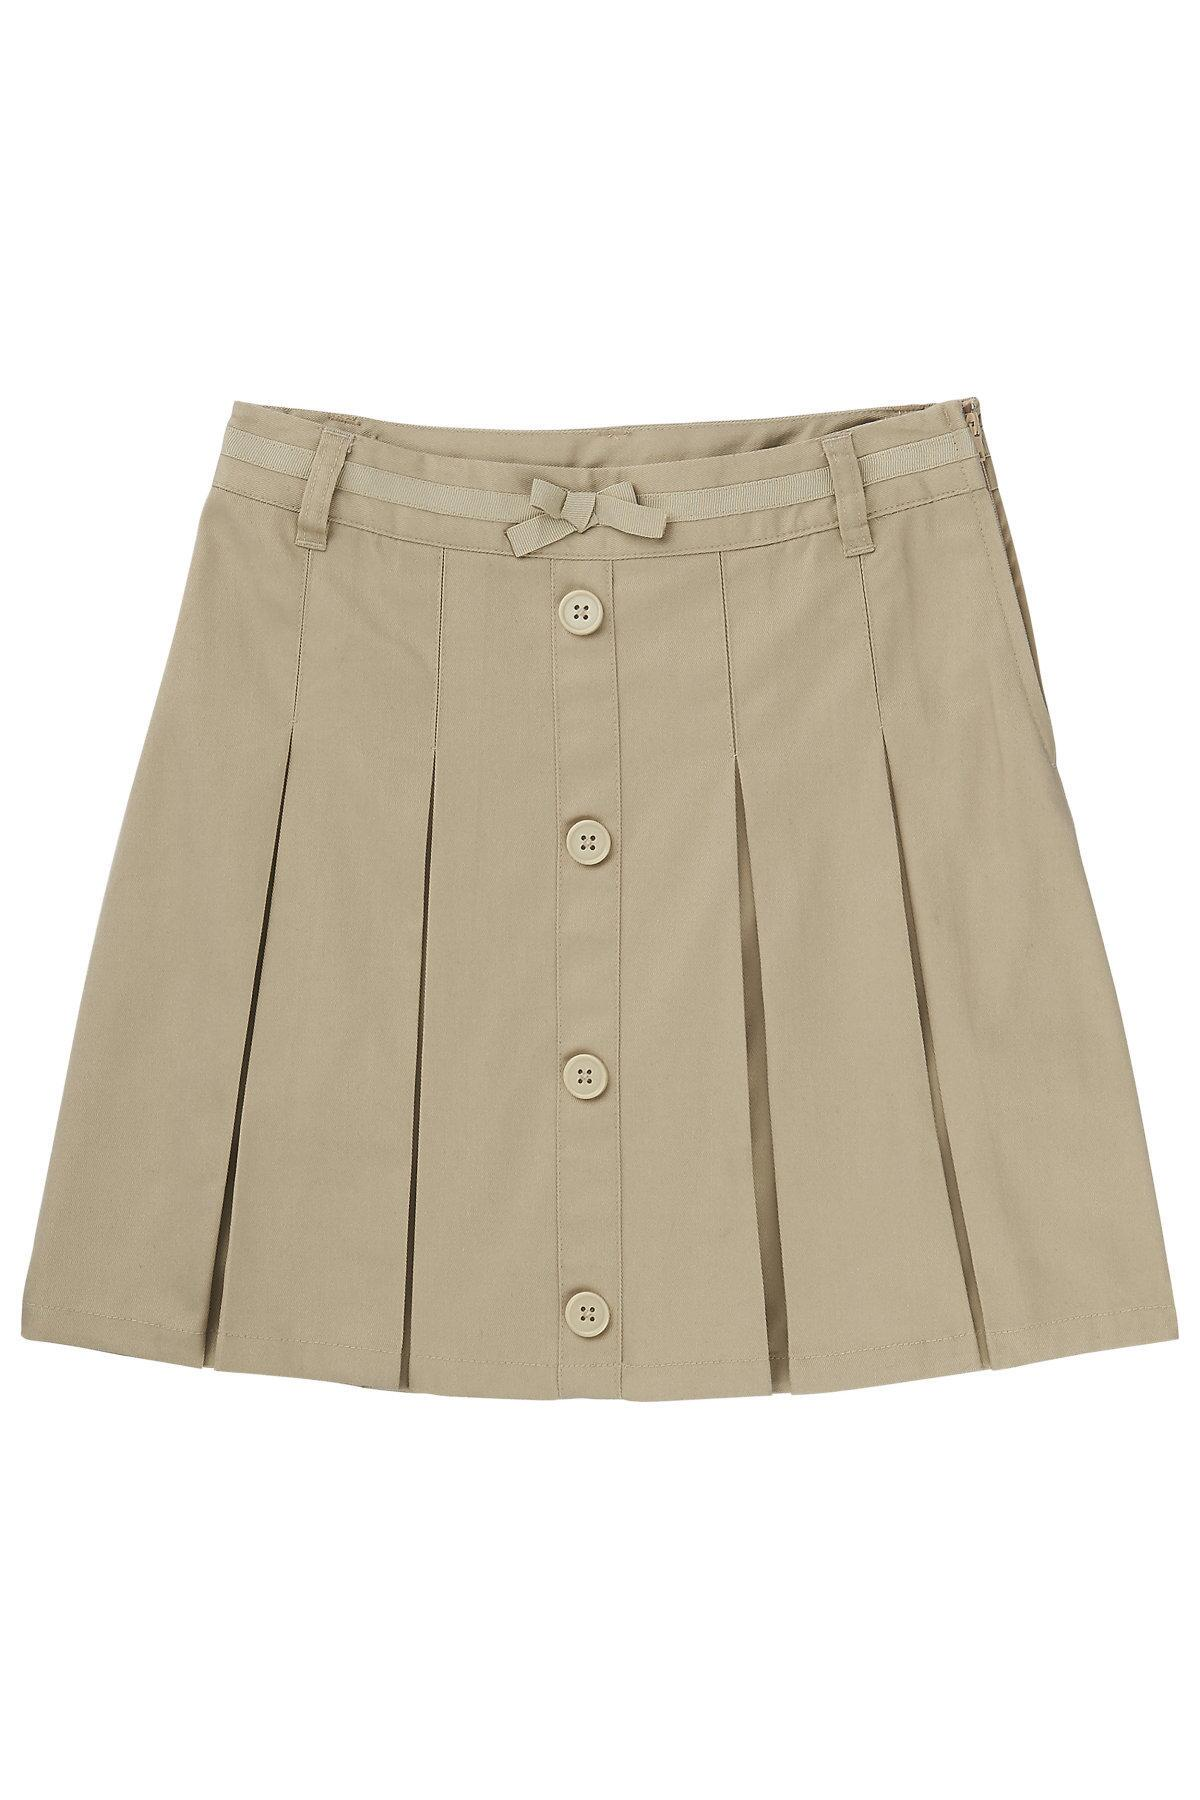 71e74dd720 Skirts & Scooters - Girls School Uniforms | French Toast - French Toast